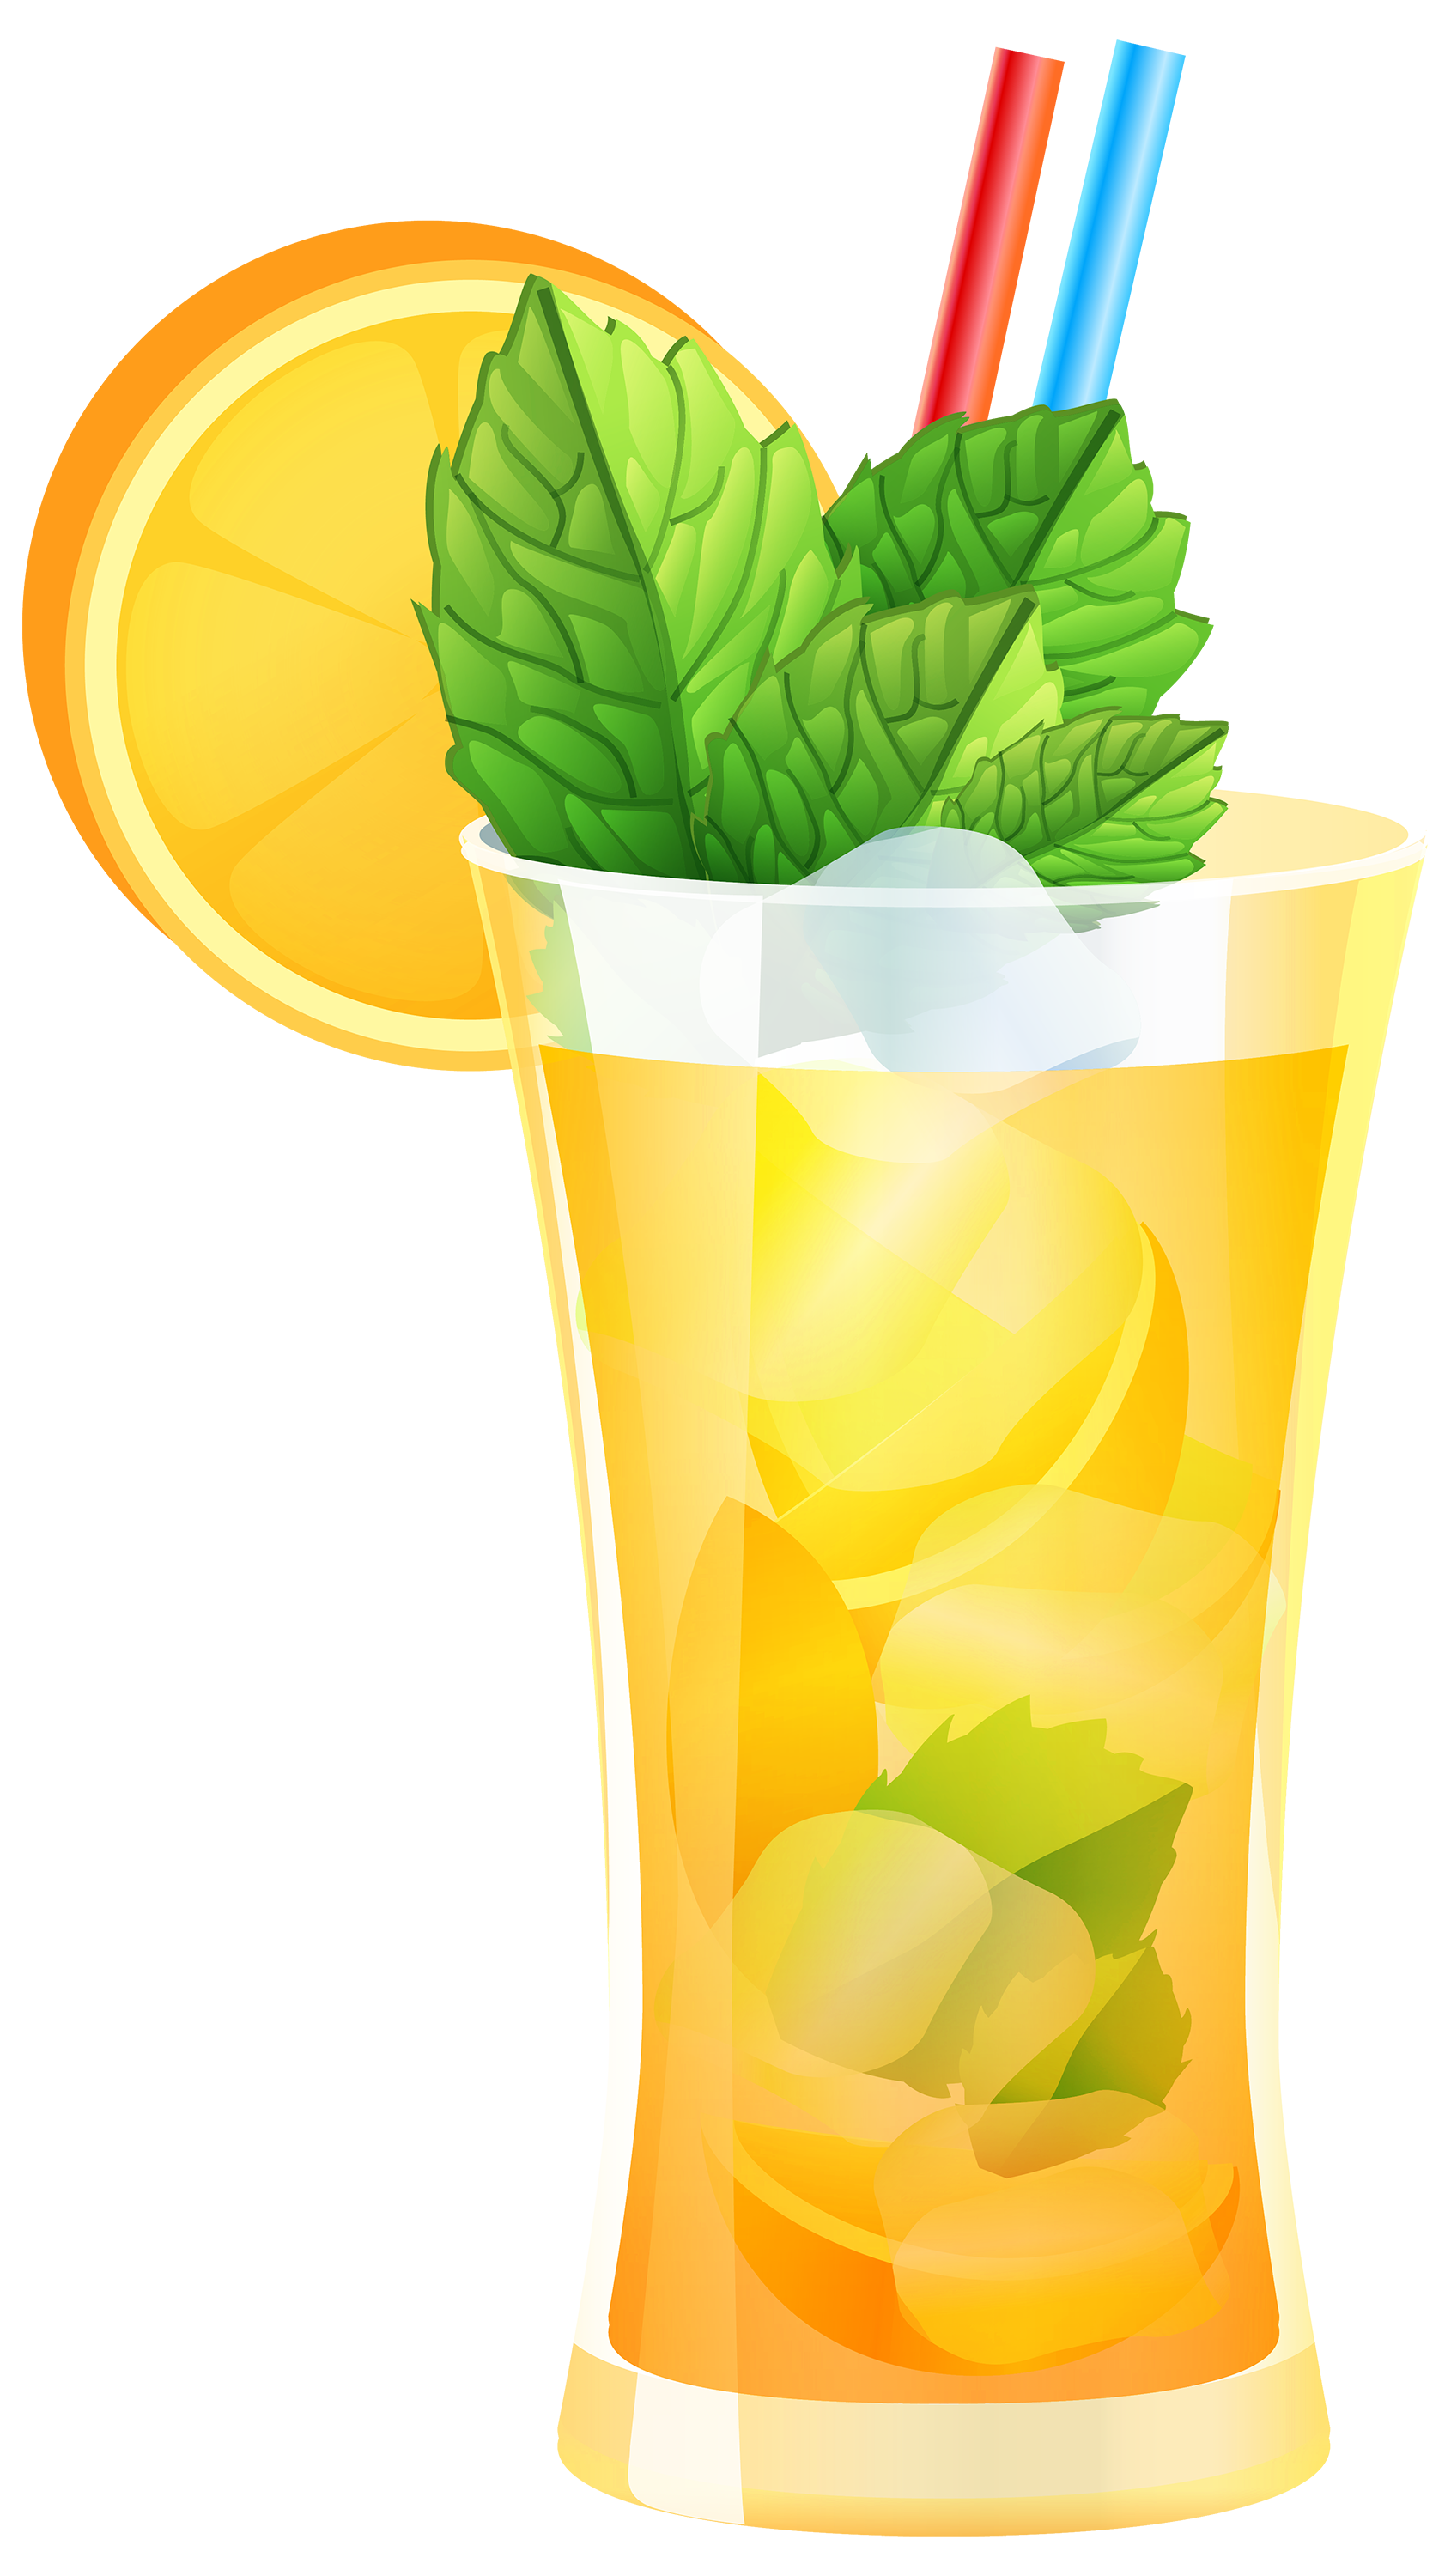 Cocktail clipart transparent #3 - Cocktail PNG HD